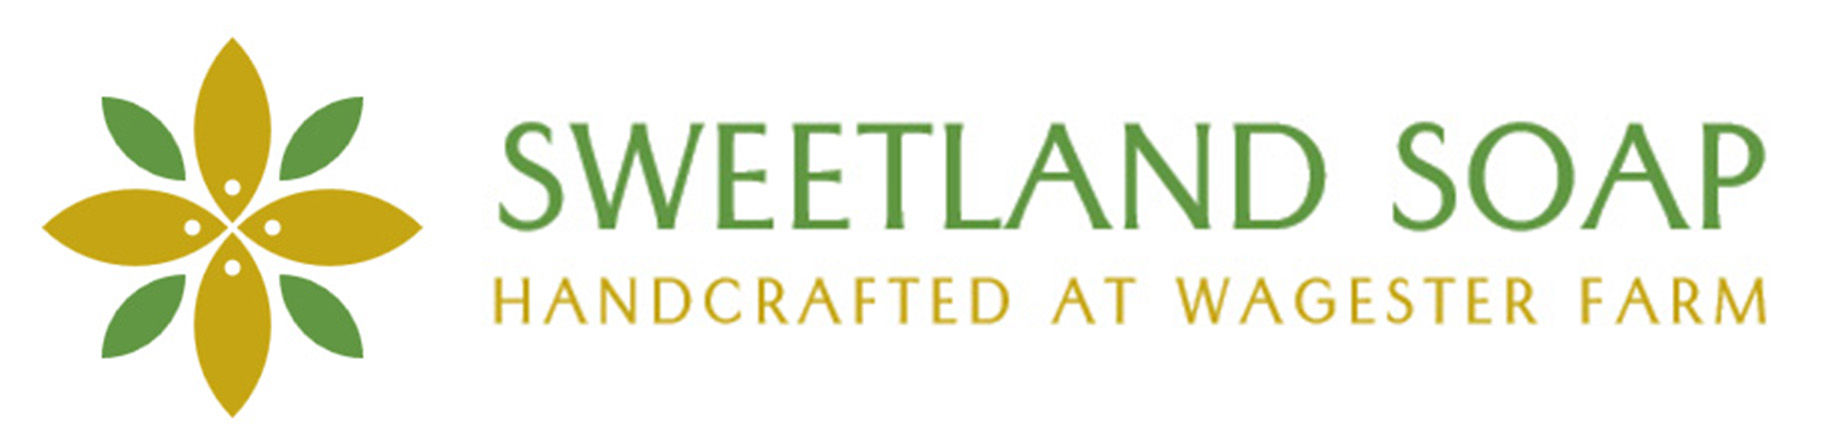 Sweetland Soap